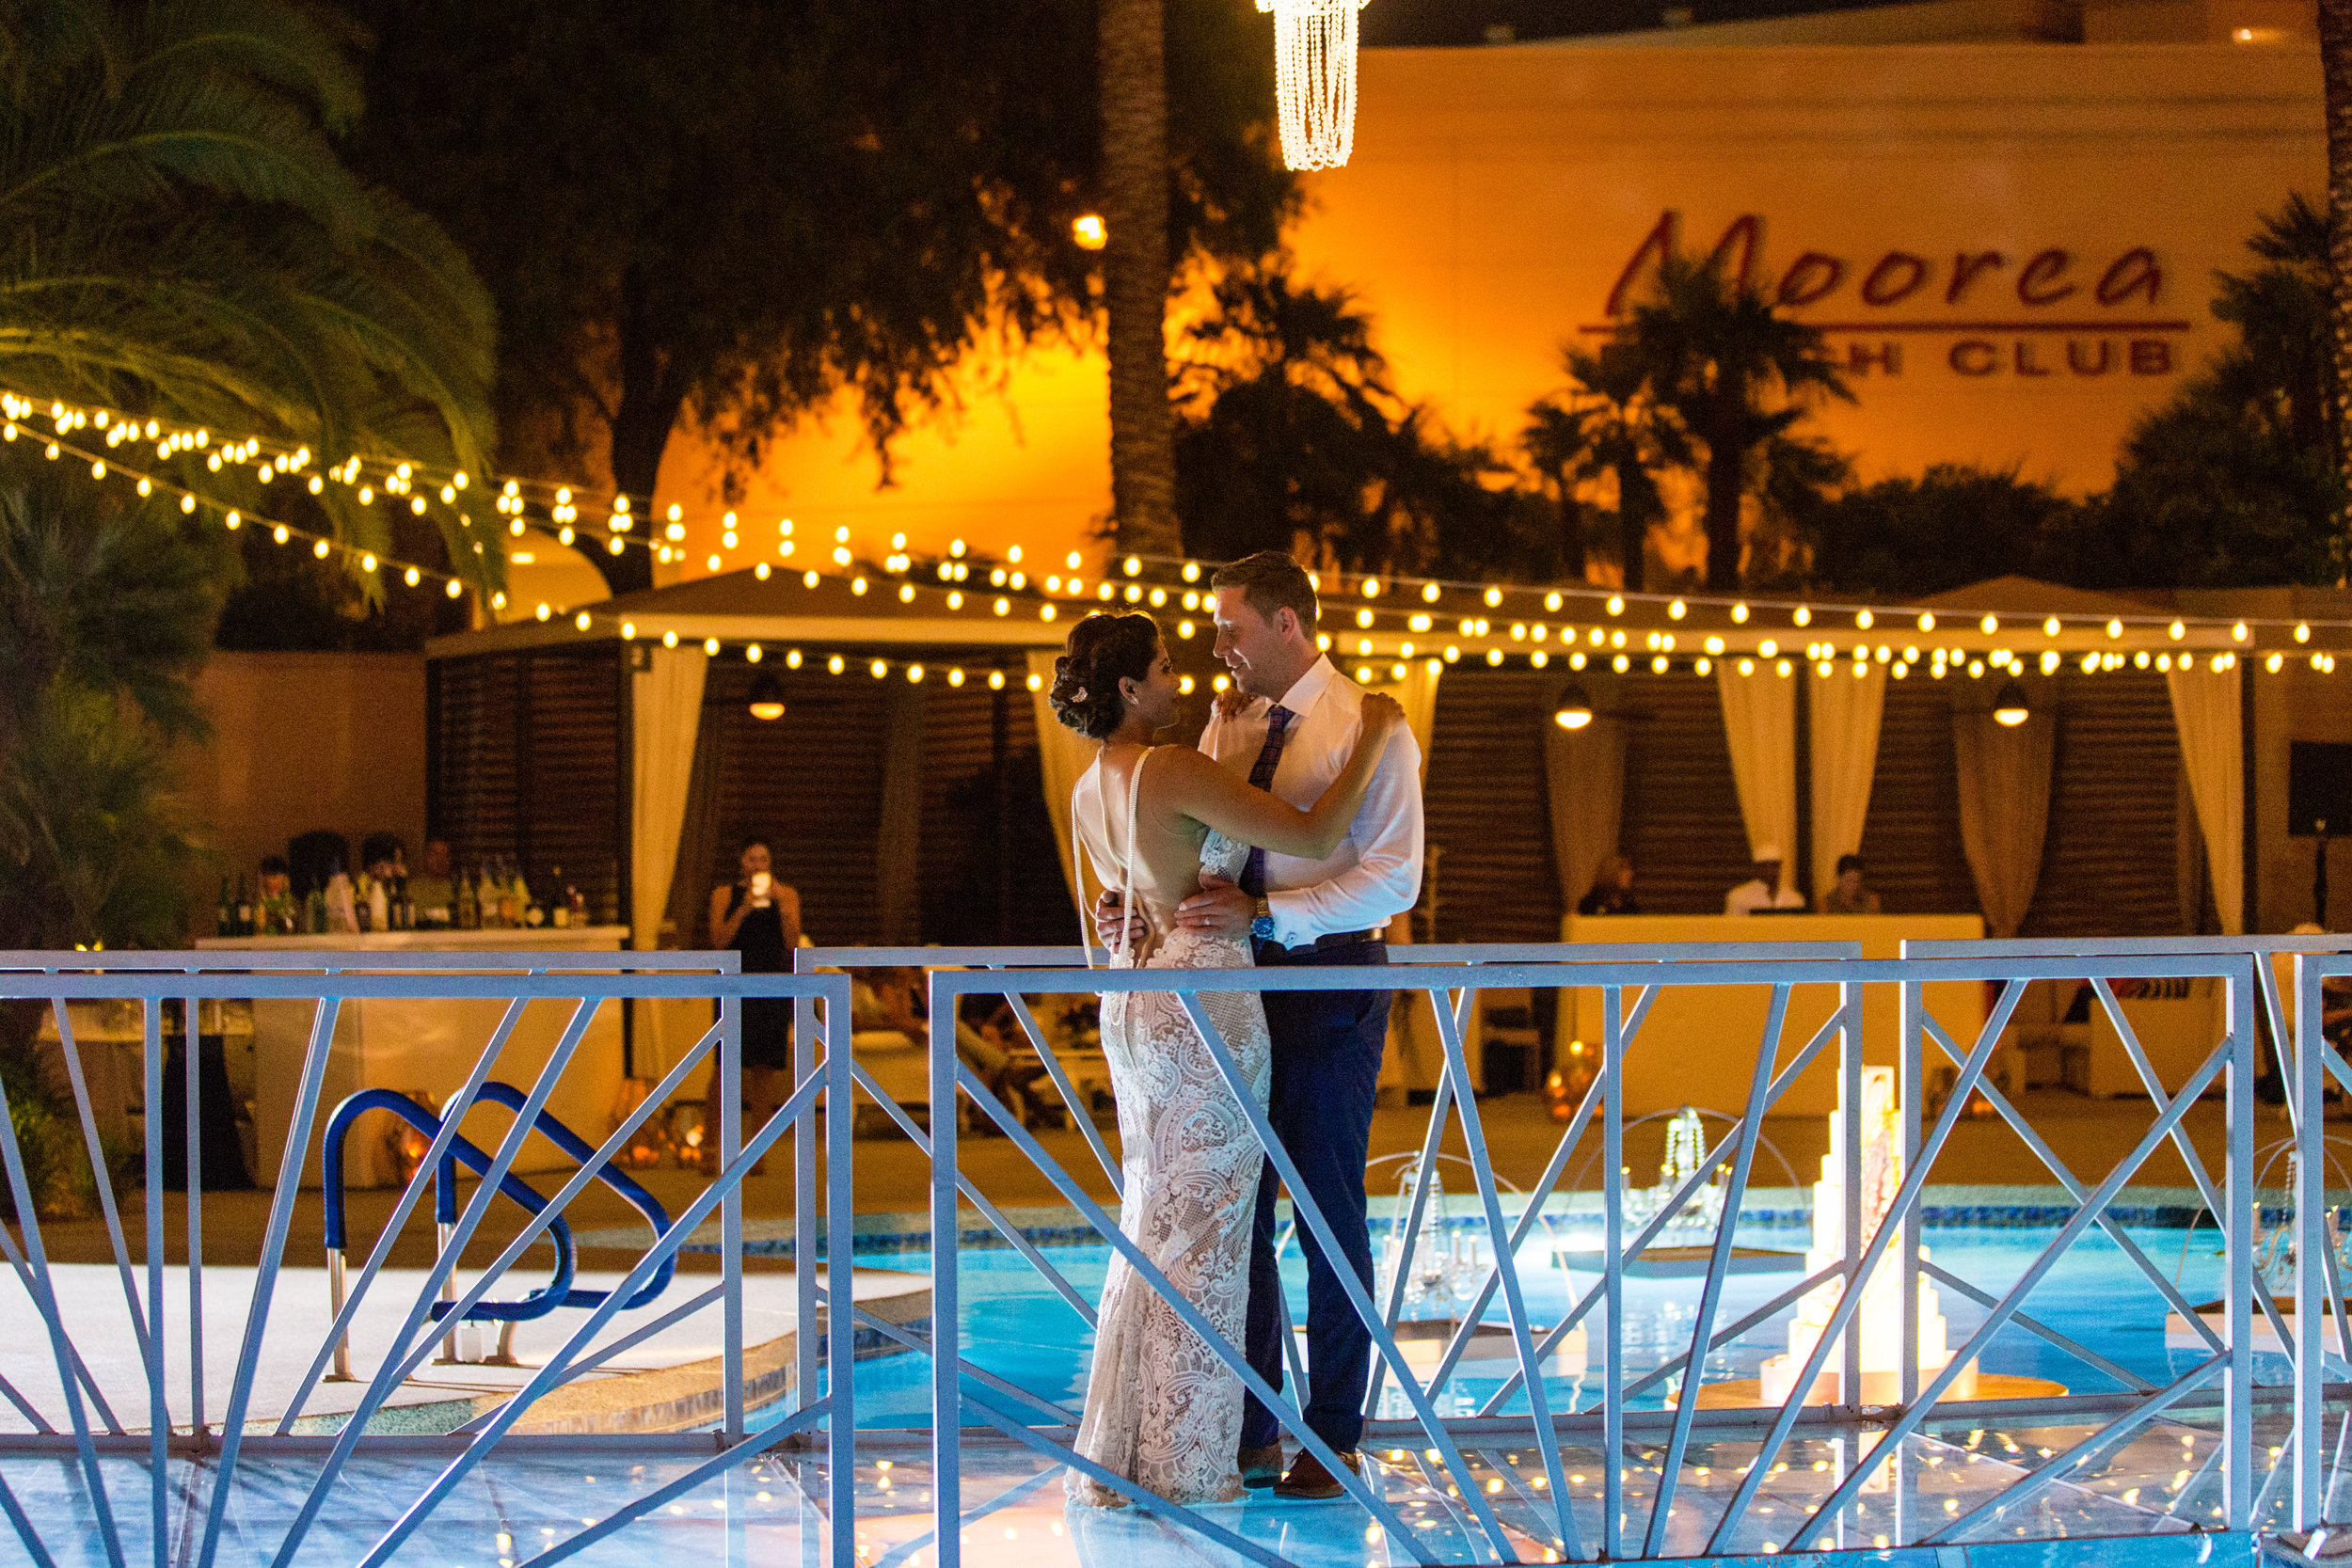 First dance on floating bridge over pool.First dance on bridge over pool.Jewel toned wedding centerpieces with gold accents.Wedding Planning by  Andrea Eppolito Events  · Photography by  Shandro Photo   · Wedding Venue  Four Seasons Las Vegas  · Floral and Decor by  Destination by Design  · Cake by  Four Seasons Las Vegas  · Chandeliers and Lighting by  LED Unplugged  · Dress by  Berta  and Menu by Alligator Soup